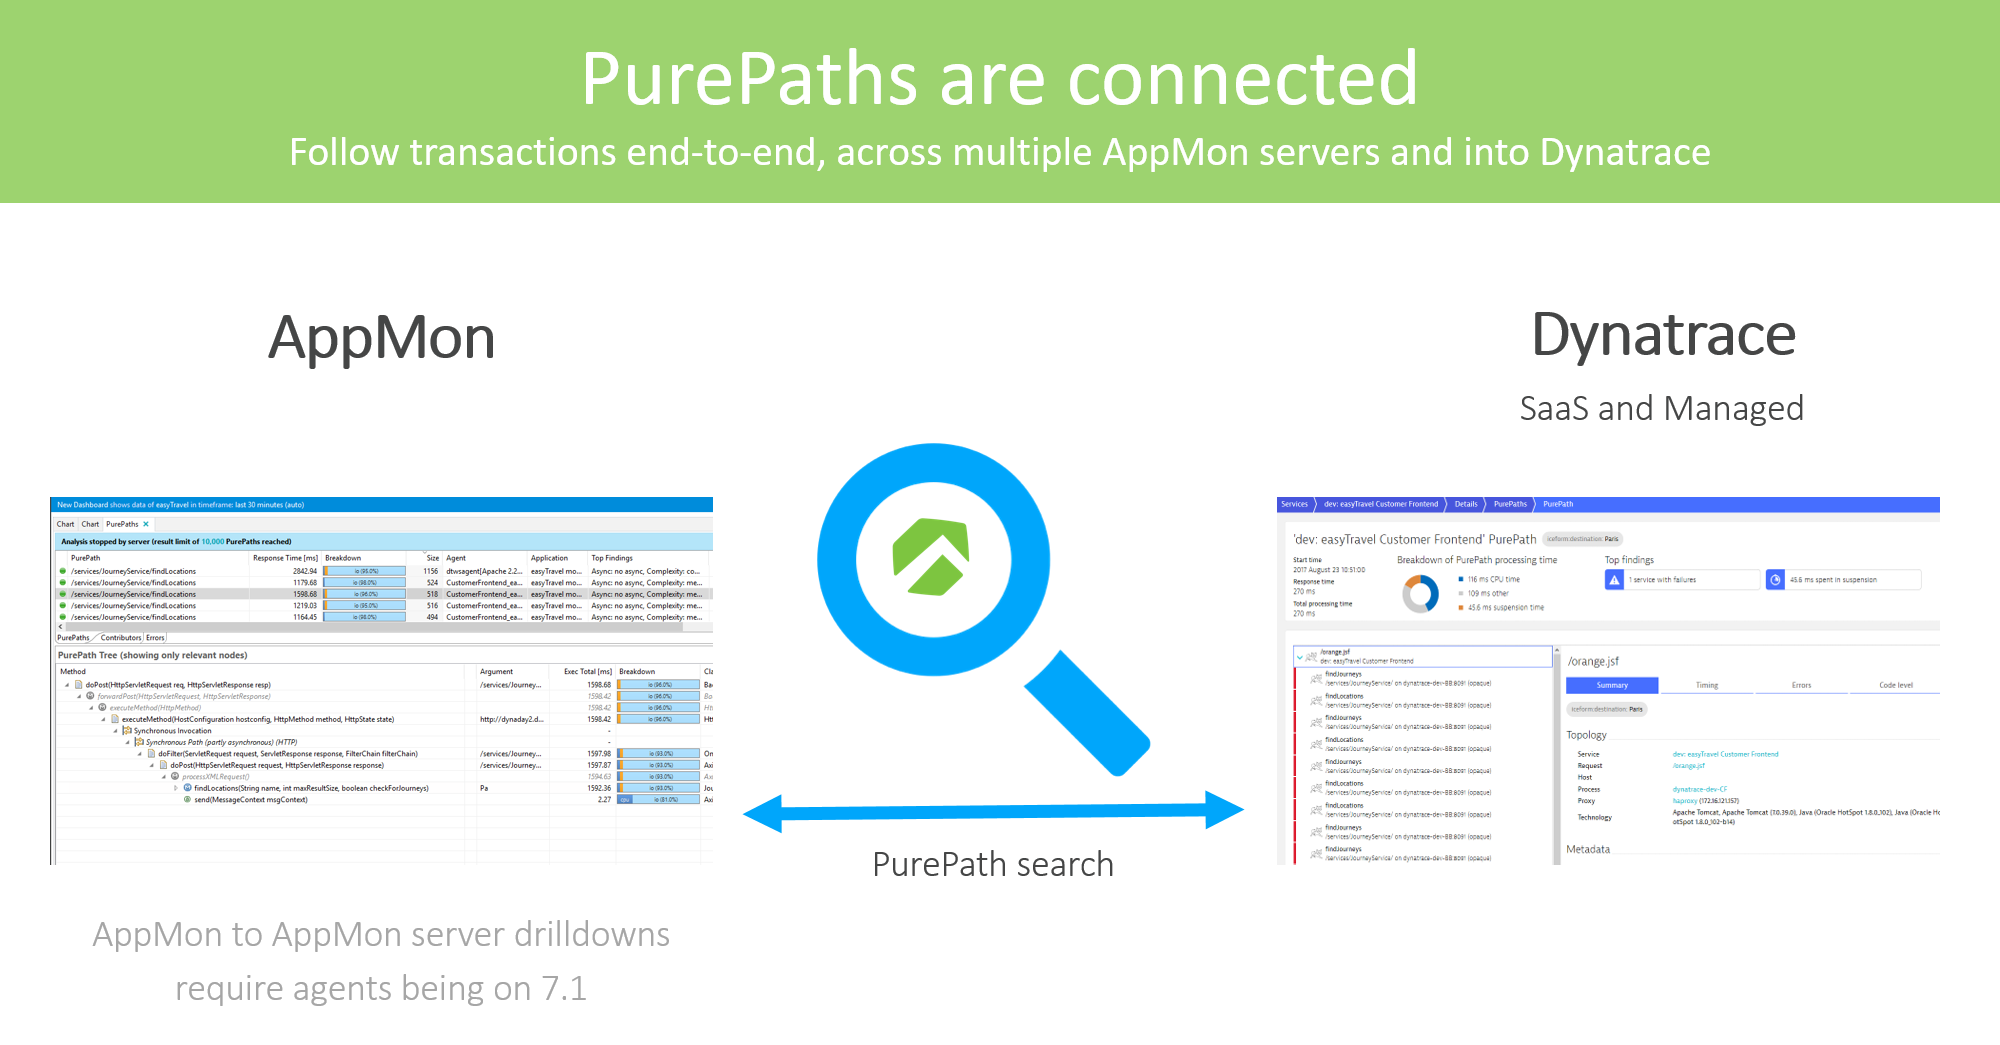 Cross-product PurePaths: Connect all your important